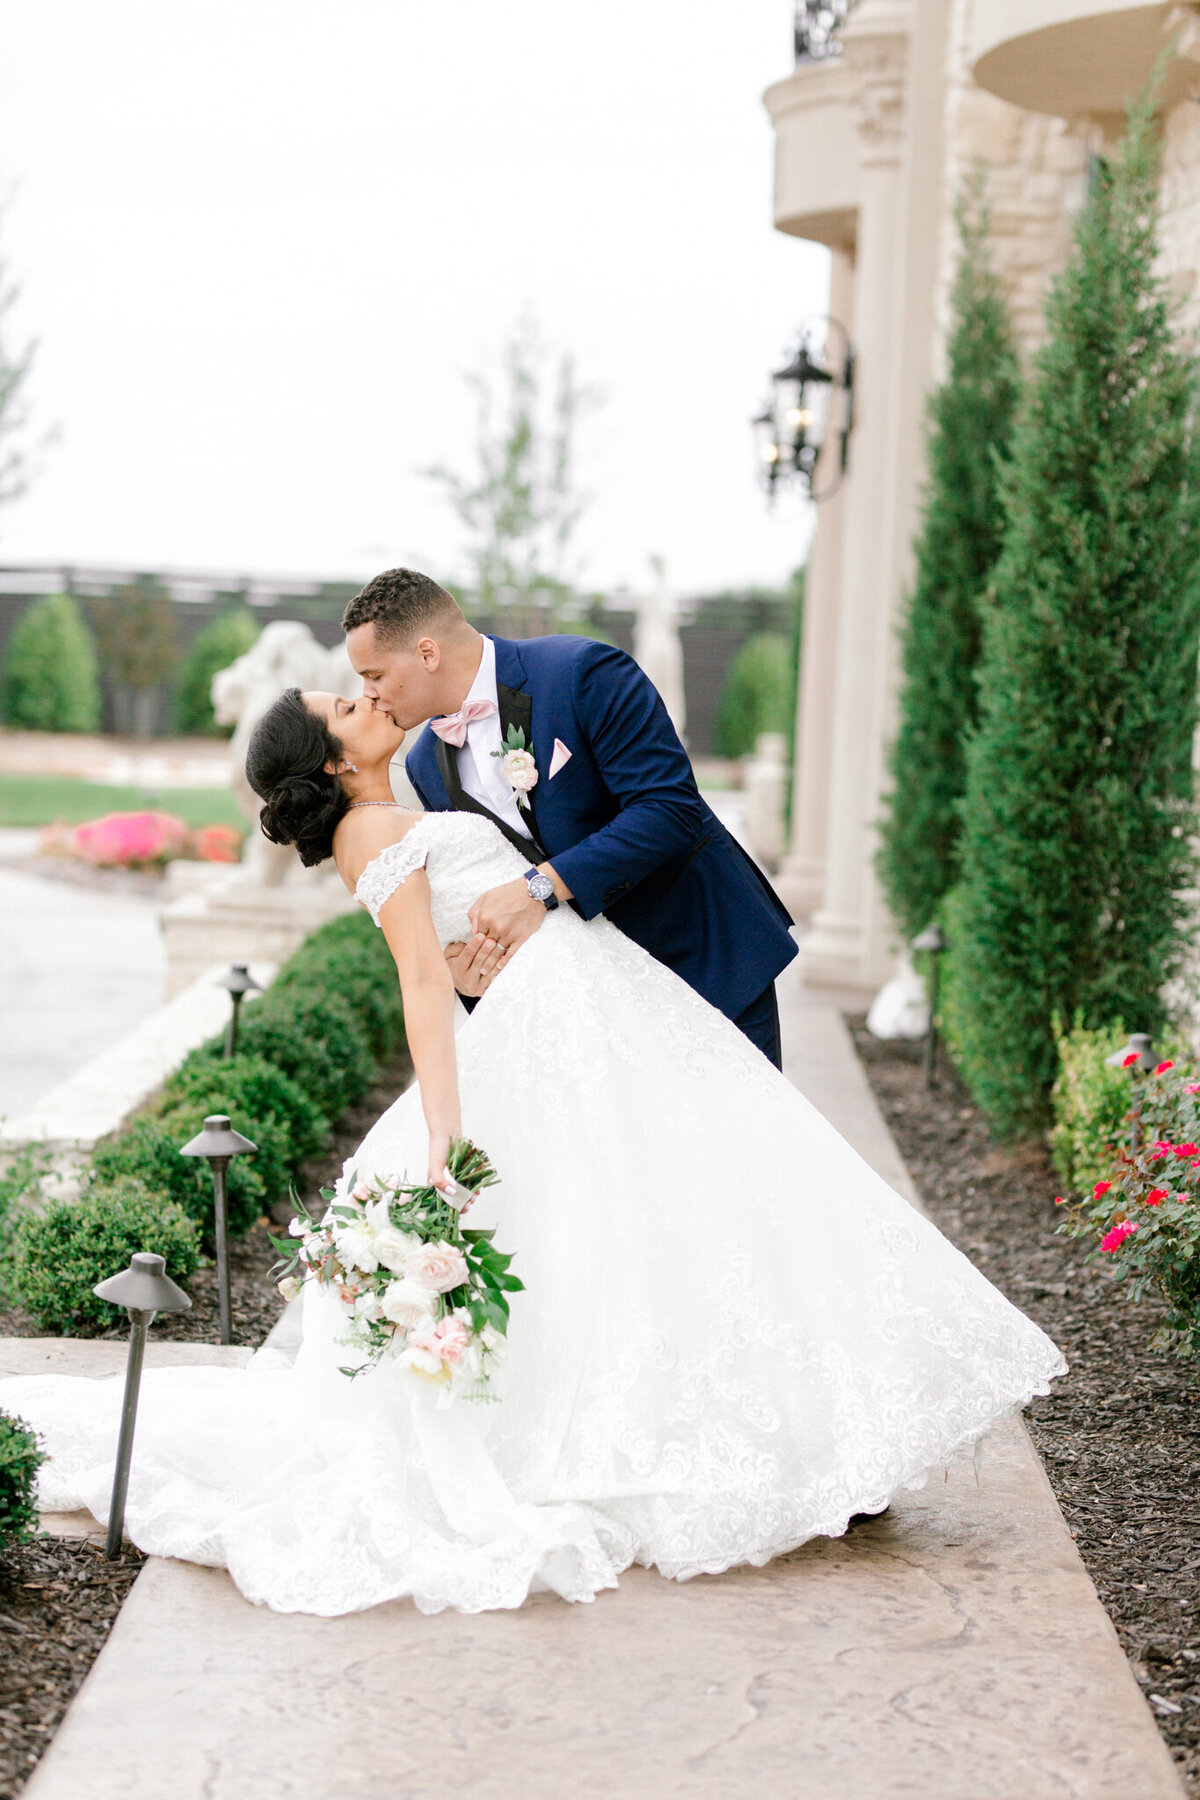 Jasmine & Josh Wedding at Knotting Hill Place | Dallas DFW Wedding Photographer | Sami Kathryn Photography-106